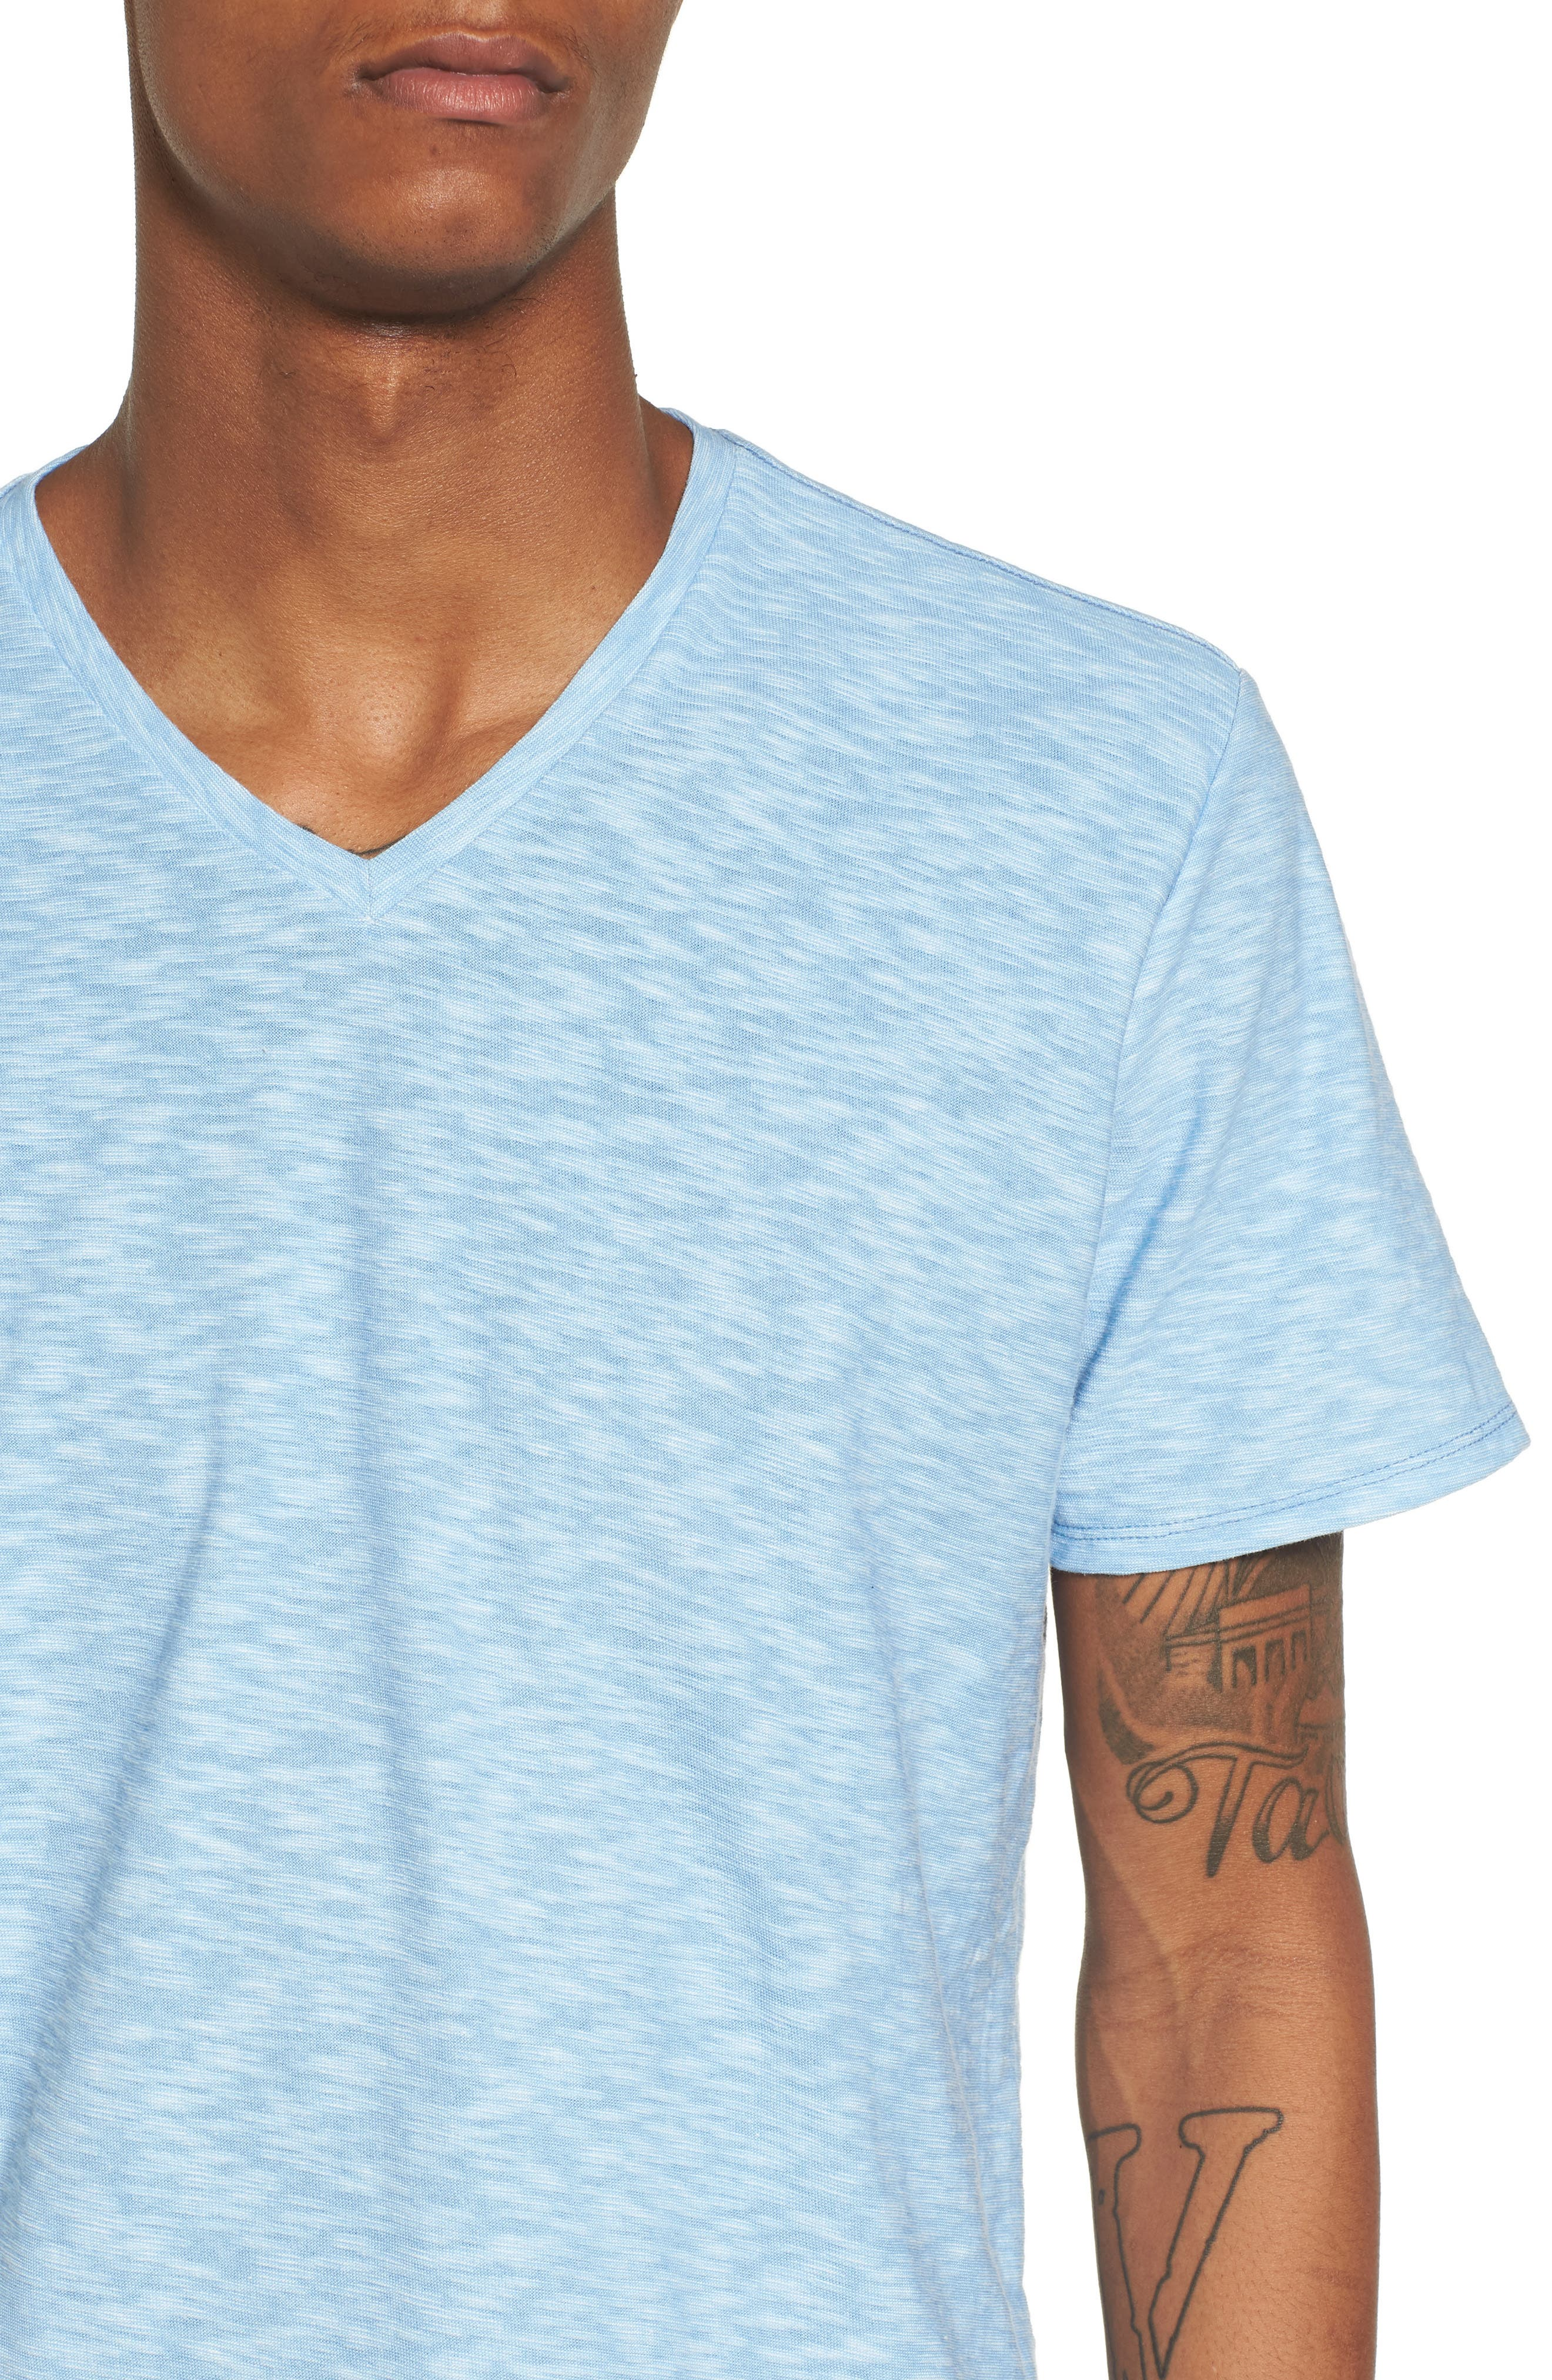 Alternate Image 4  - The Rail Slub Knit V-Neck T-Shirt